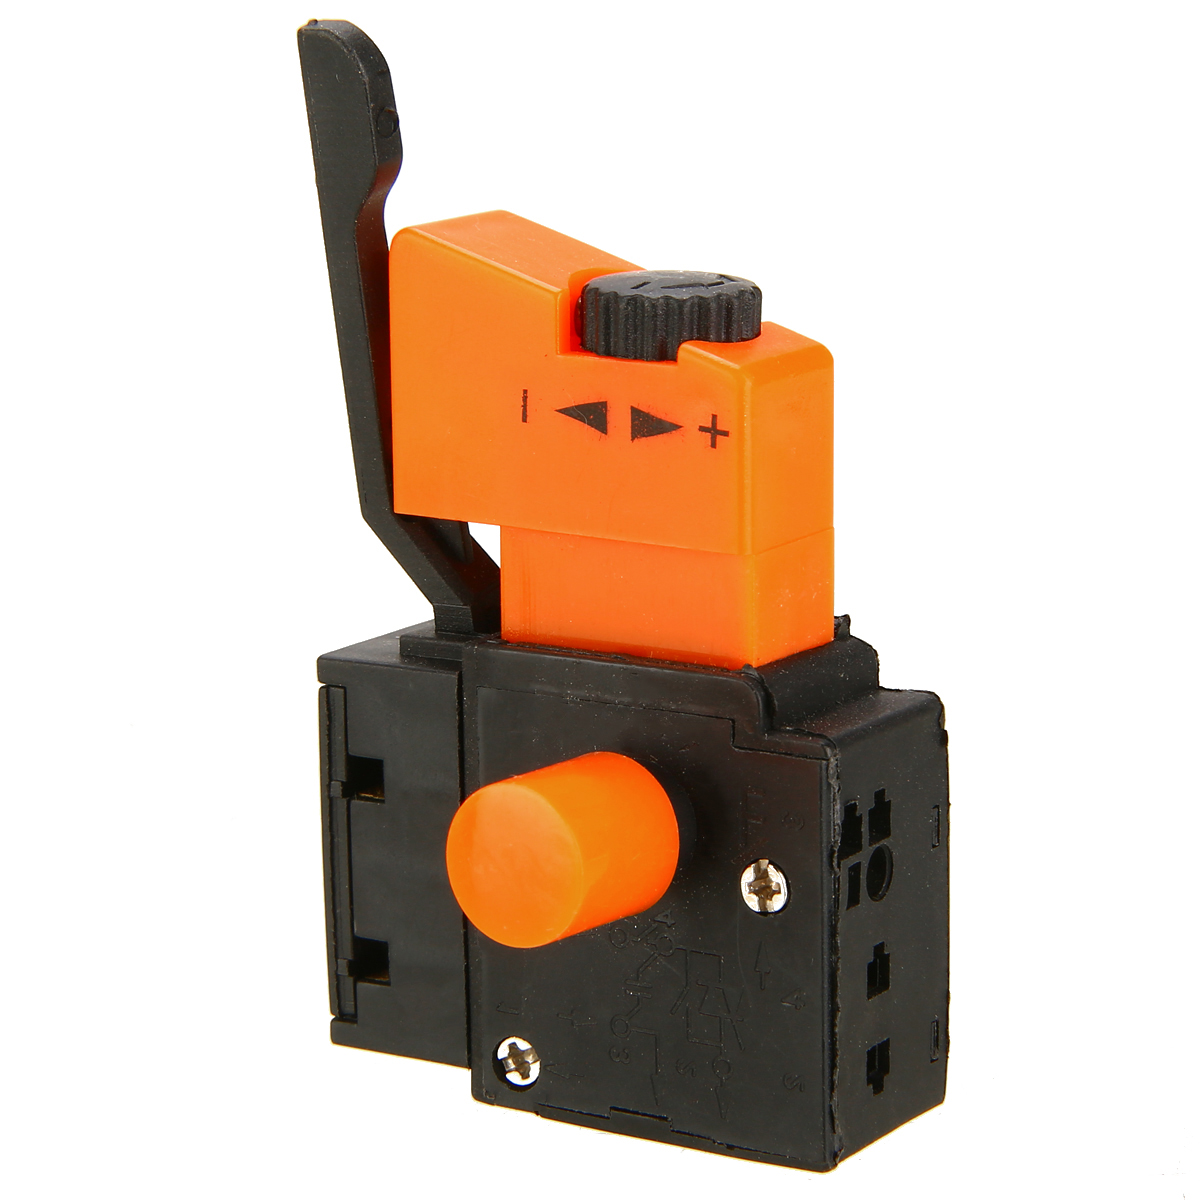 AC 250V/4A <font><b>FA2</b></font>-<font><b>4</b></font>/<font><b>1BEK</b></font> Adjustable Lock on Electric Hand Drill Speed Control Trigger Switch for Electric Drill Trigger Switches image